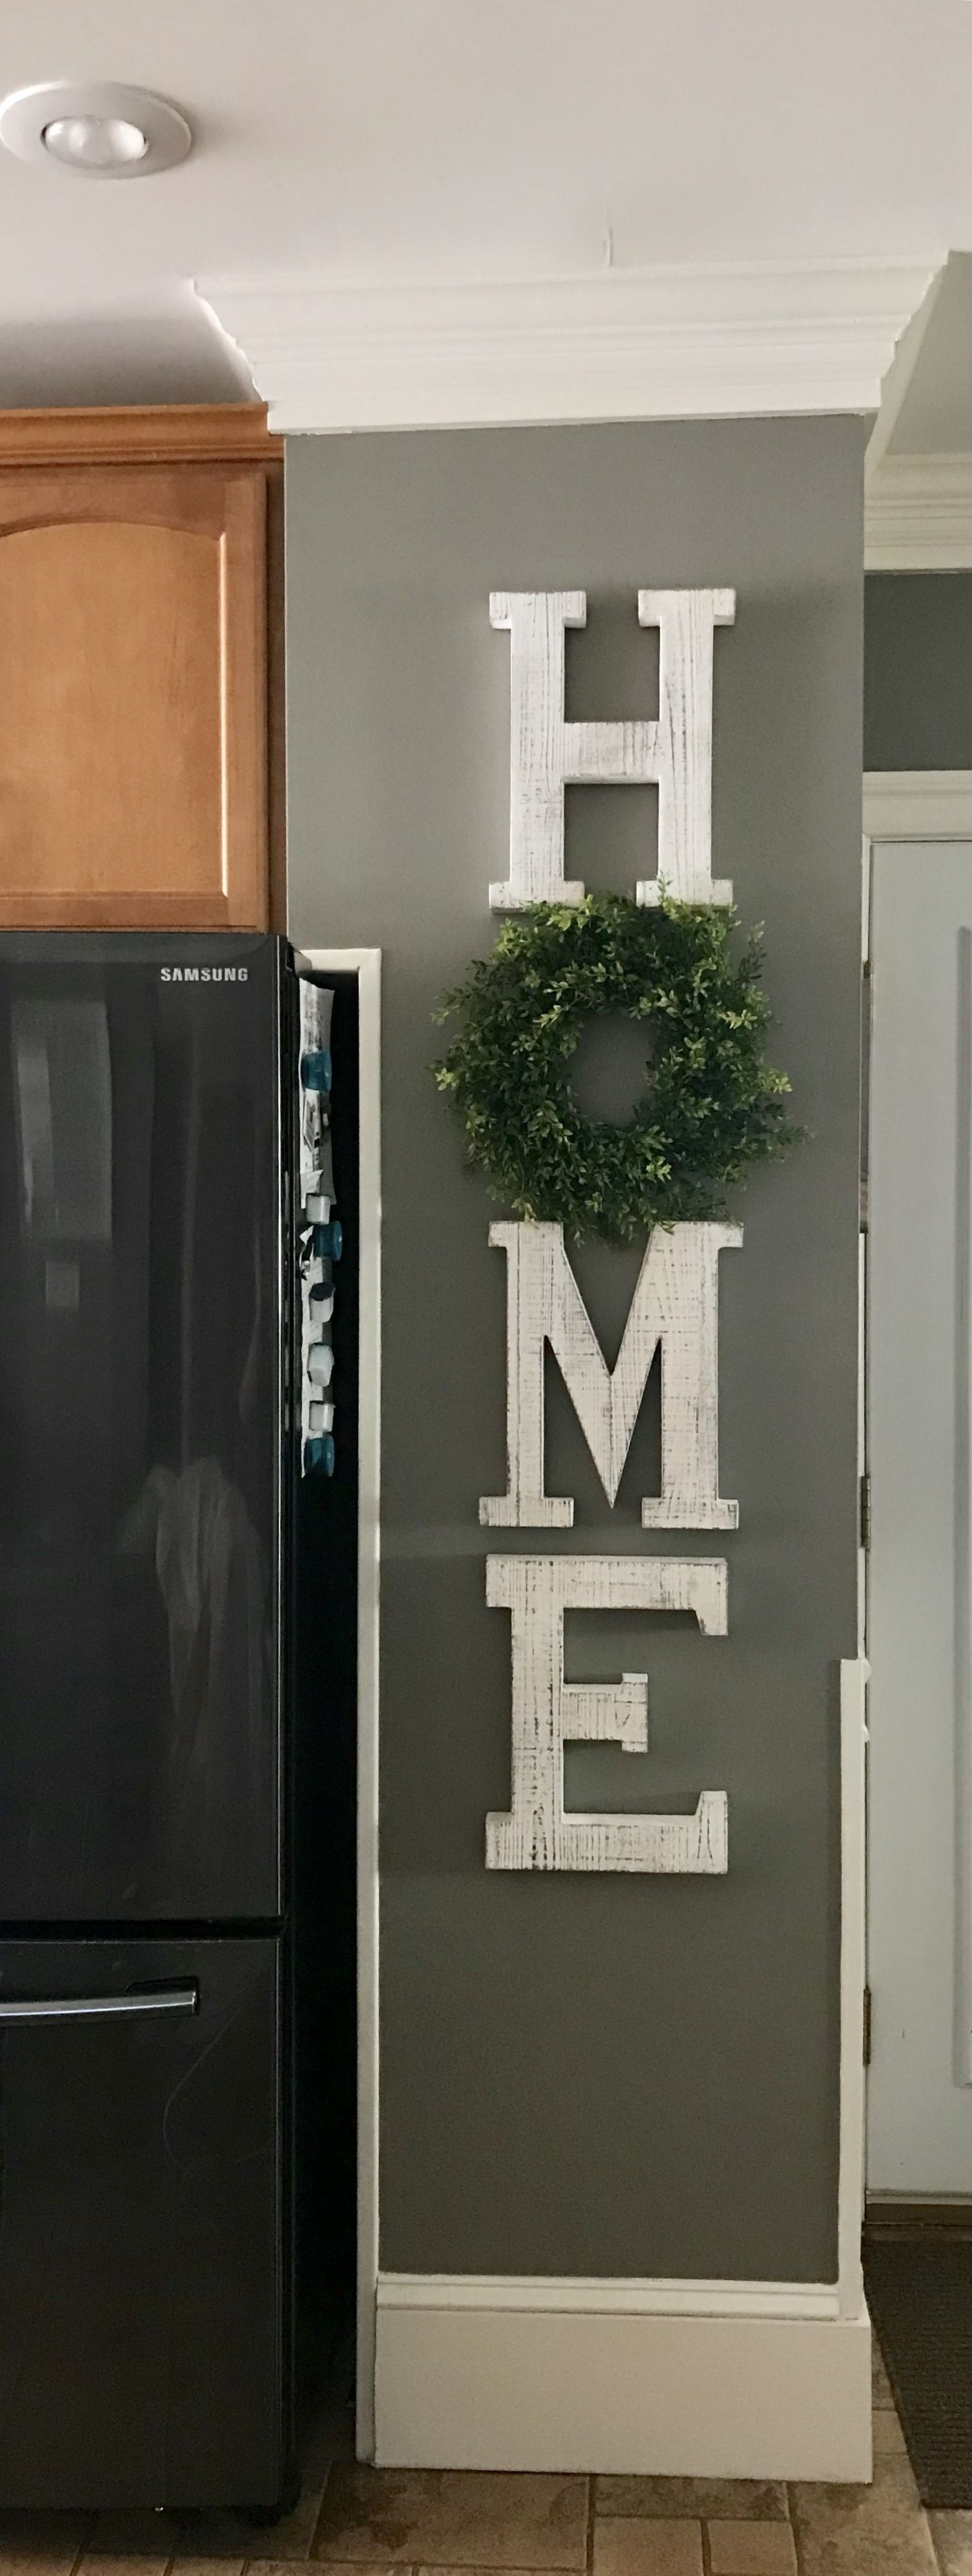 Home Sign With Wreath Wall Paint Color Valspar Artichoke Home